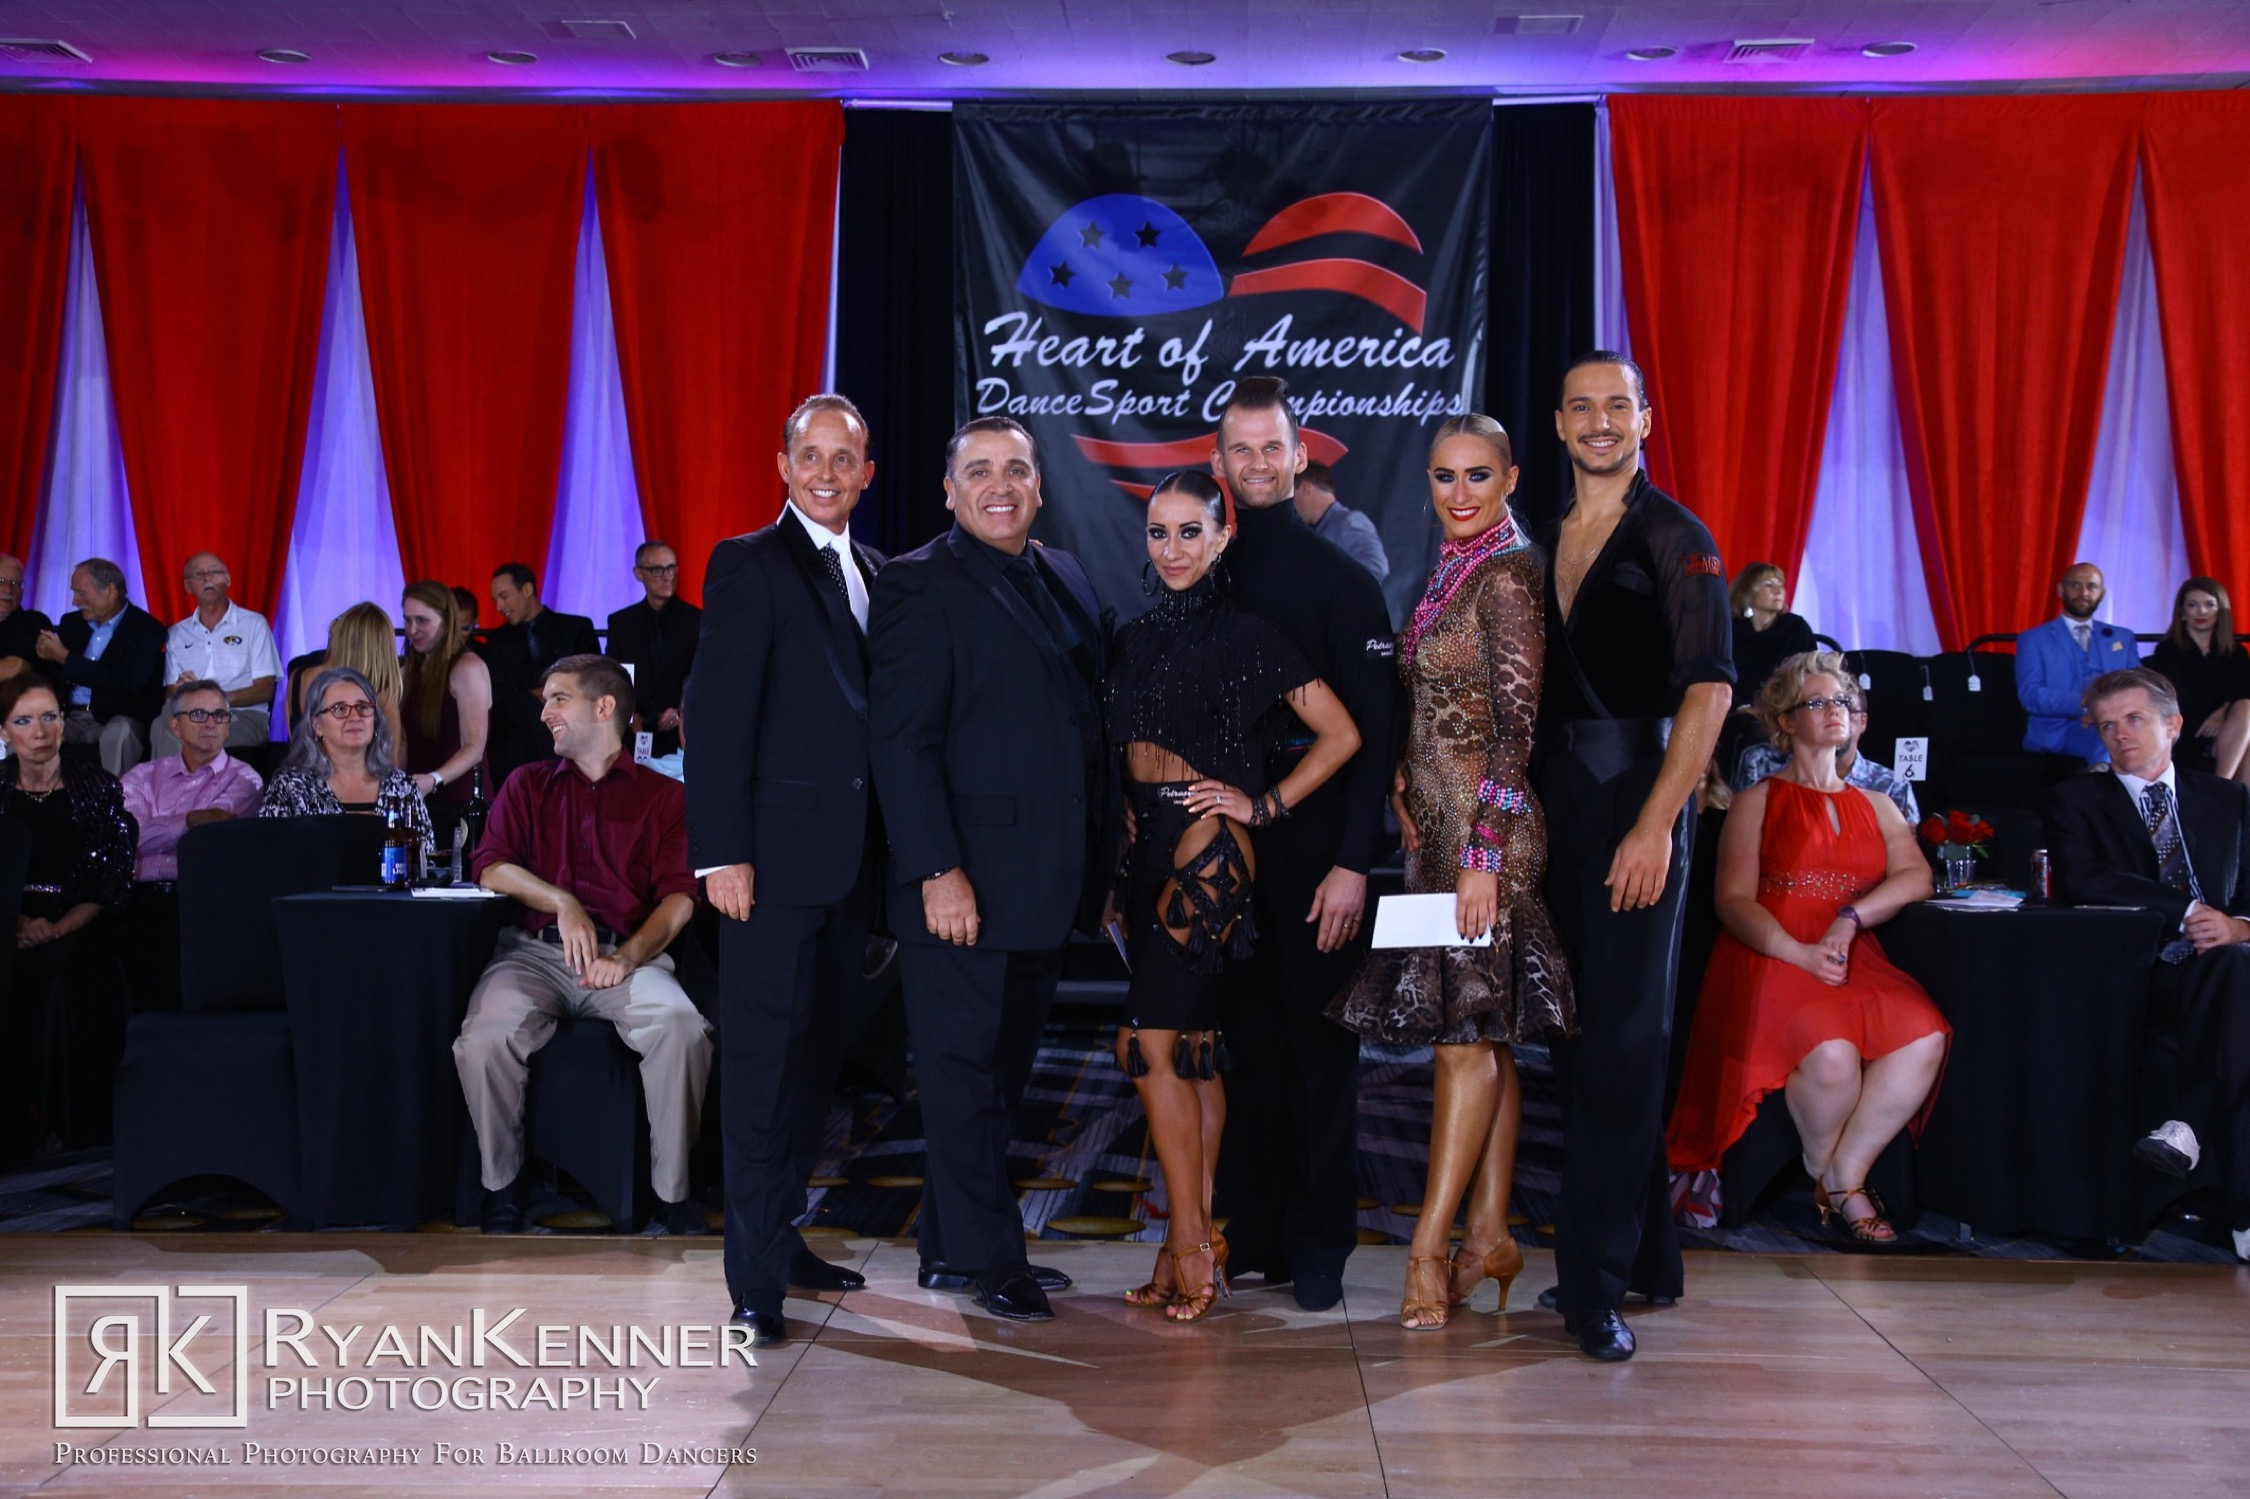 OPEN PROFESSIONAL - INTERNATIONAL LATIN - Congratulations to our 2019 champions